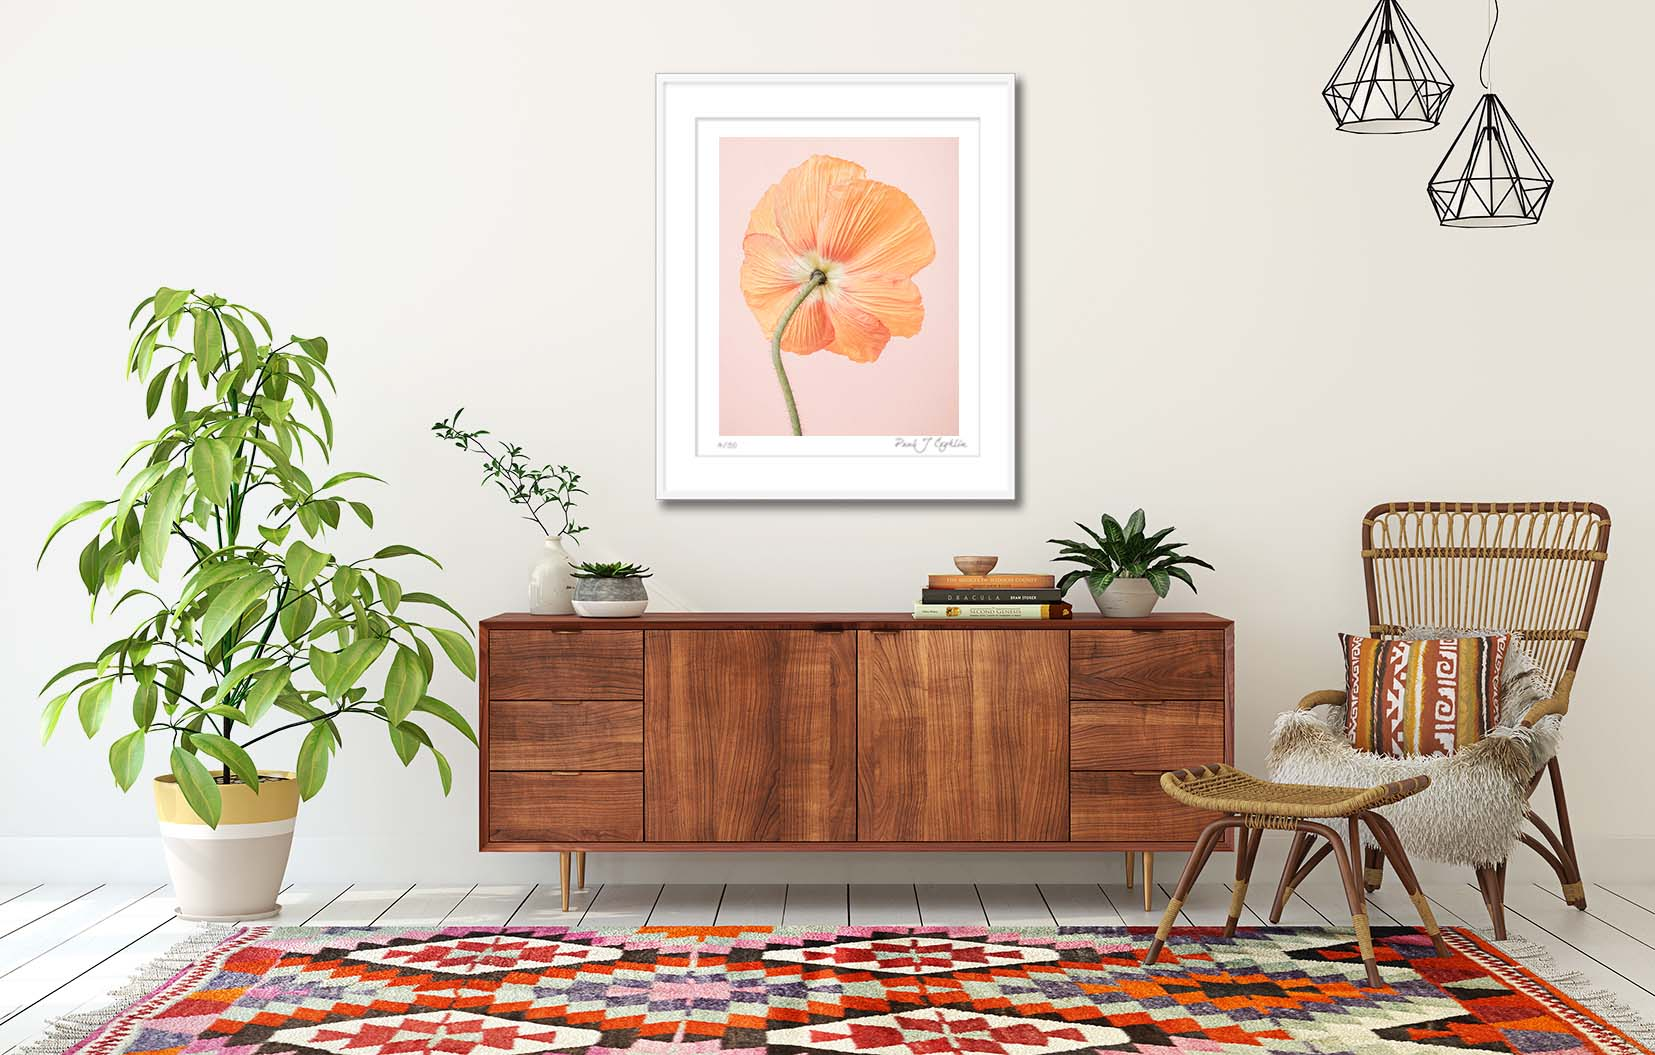 Orange Icelandic Poppy. Limited edition photographic print of an Icelandic Poppy by fine art photographer Paul Coghlin. Orange poppy in a frame on the wall.